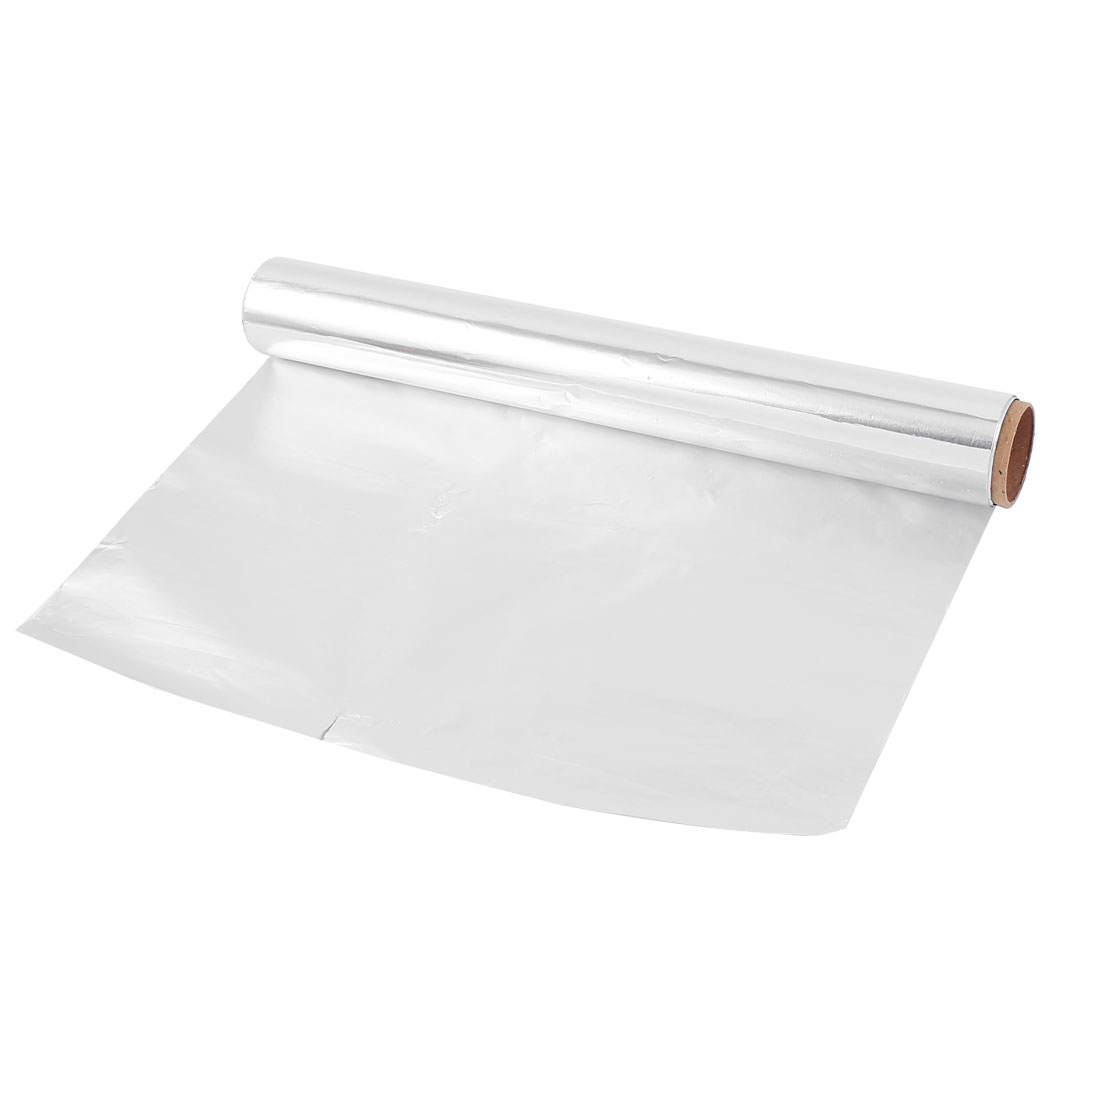 10M x 30cm Roll Oven BBQ Grill Baking Tinfoil Paper Aluminum Foil Silver Tone